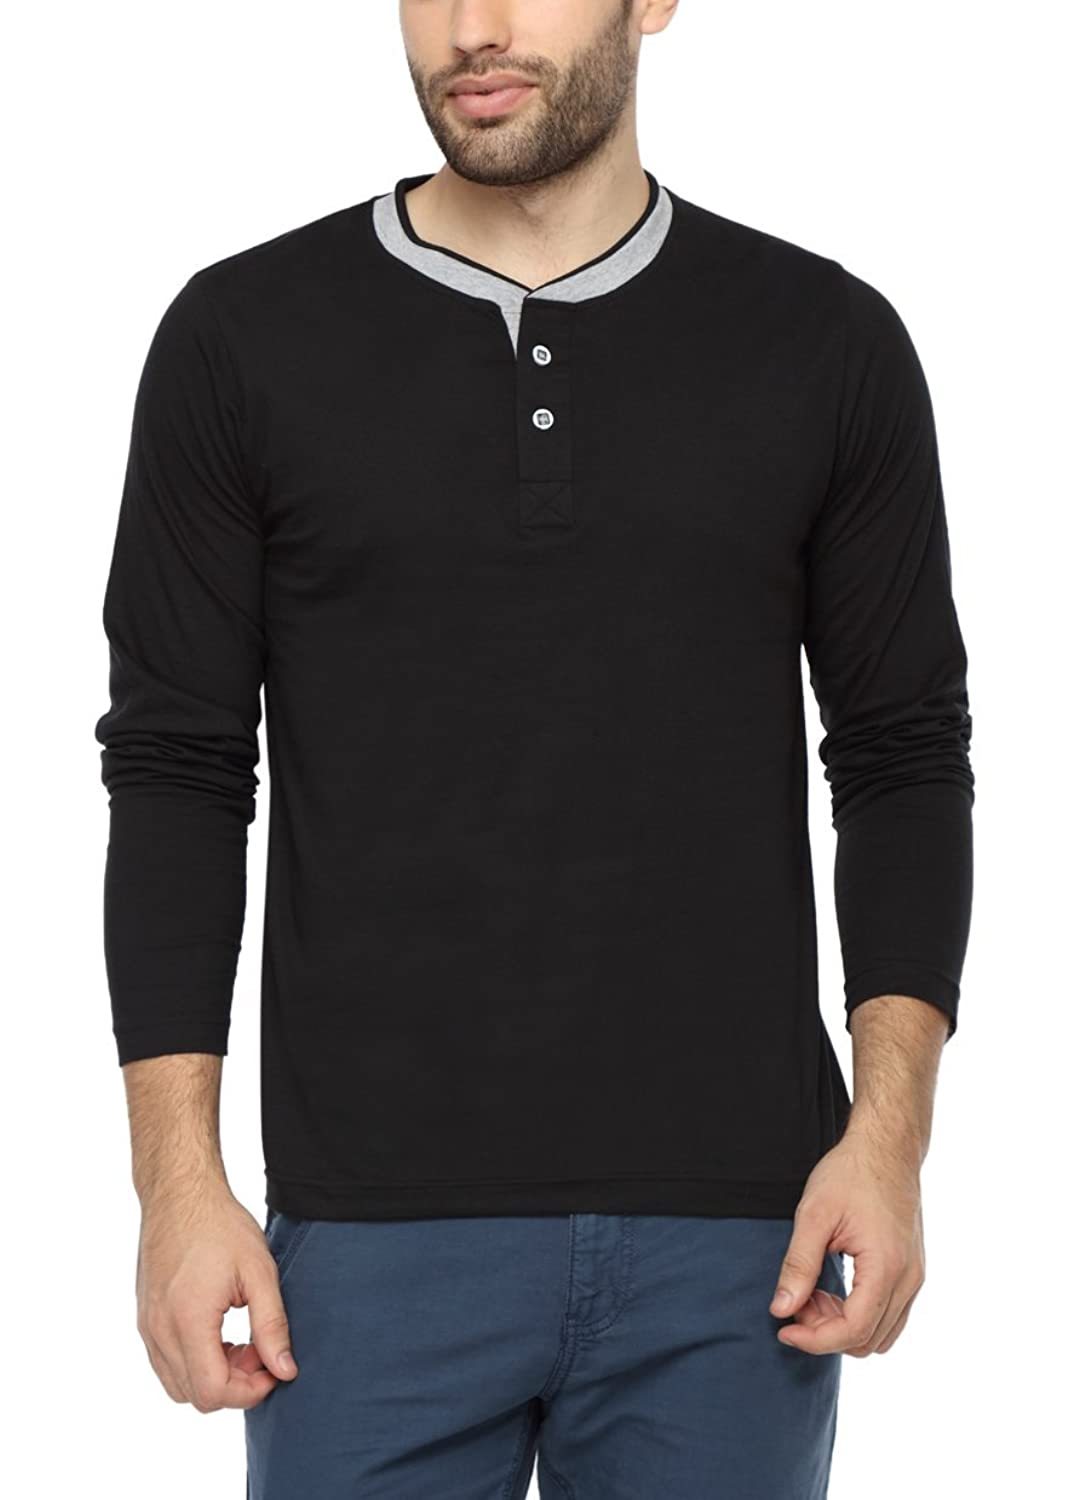 PepperClub Mens Cotton Henley Full Sleeve T-shirt - Double Rib